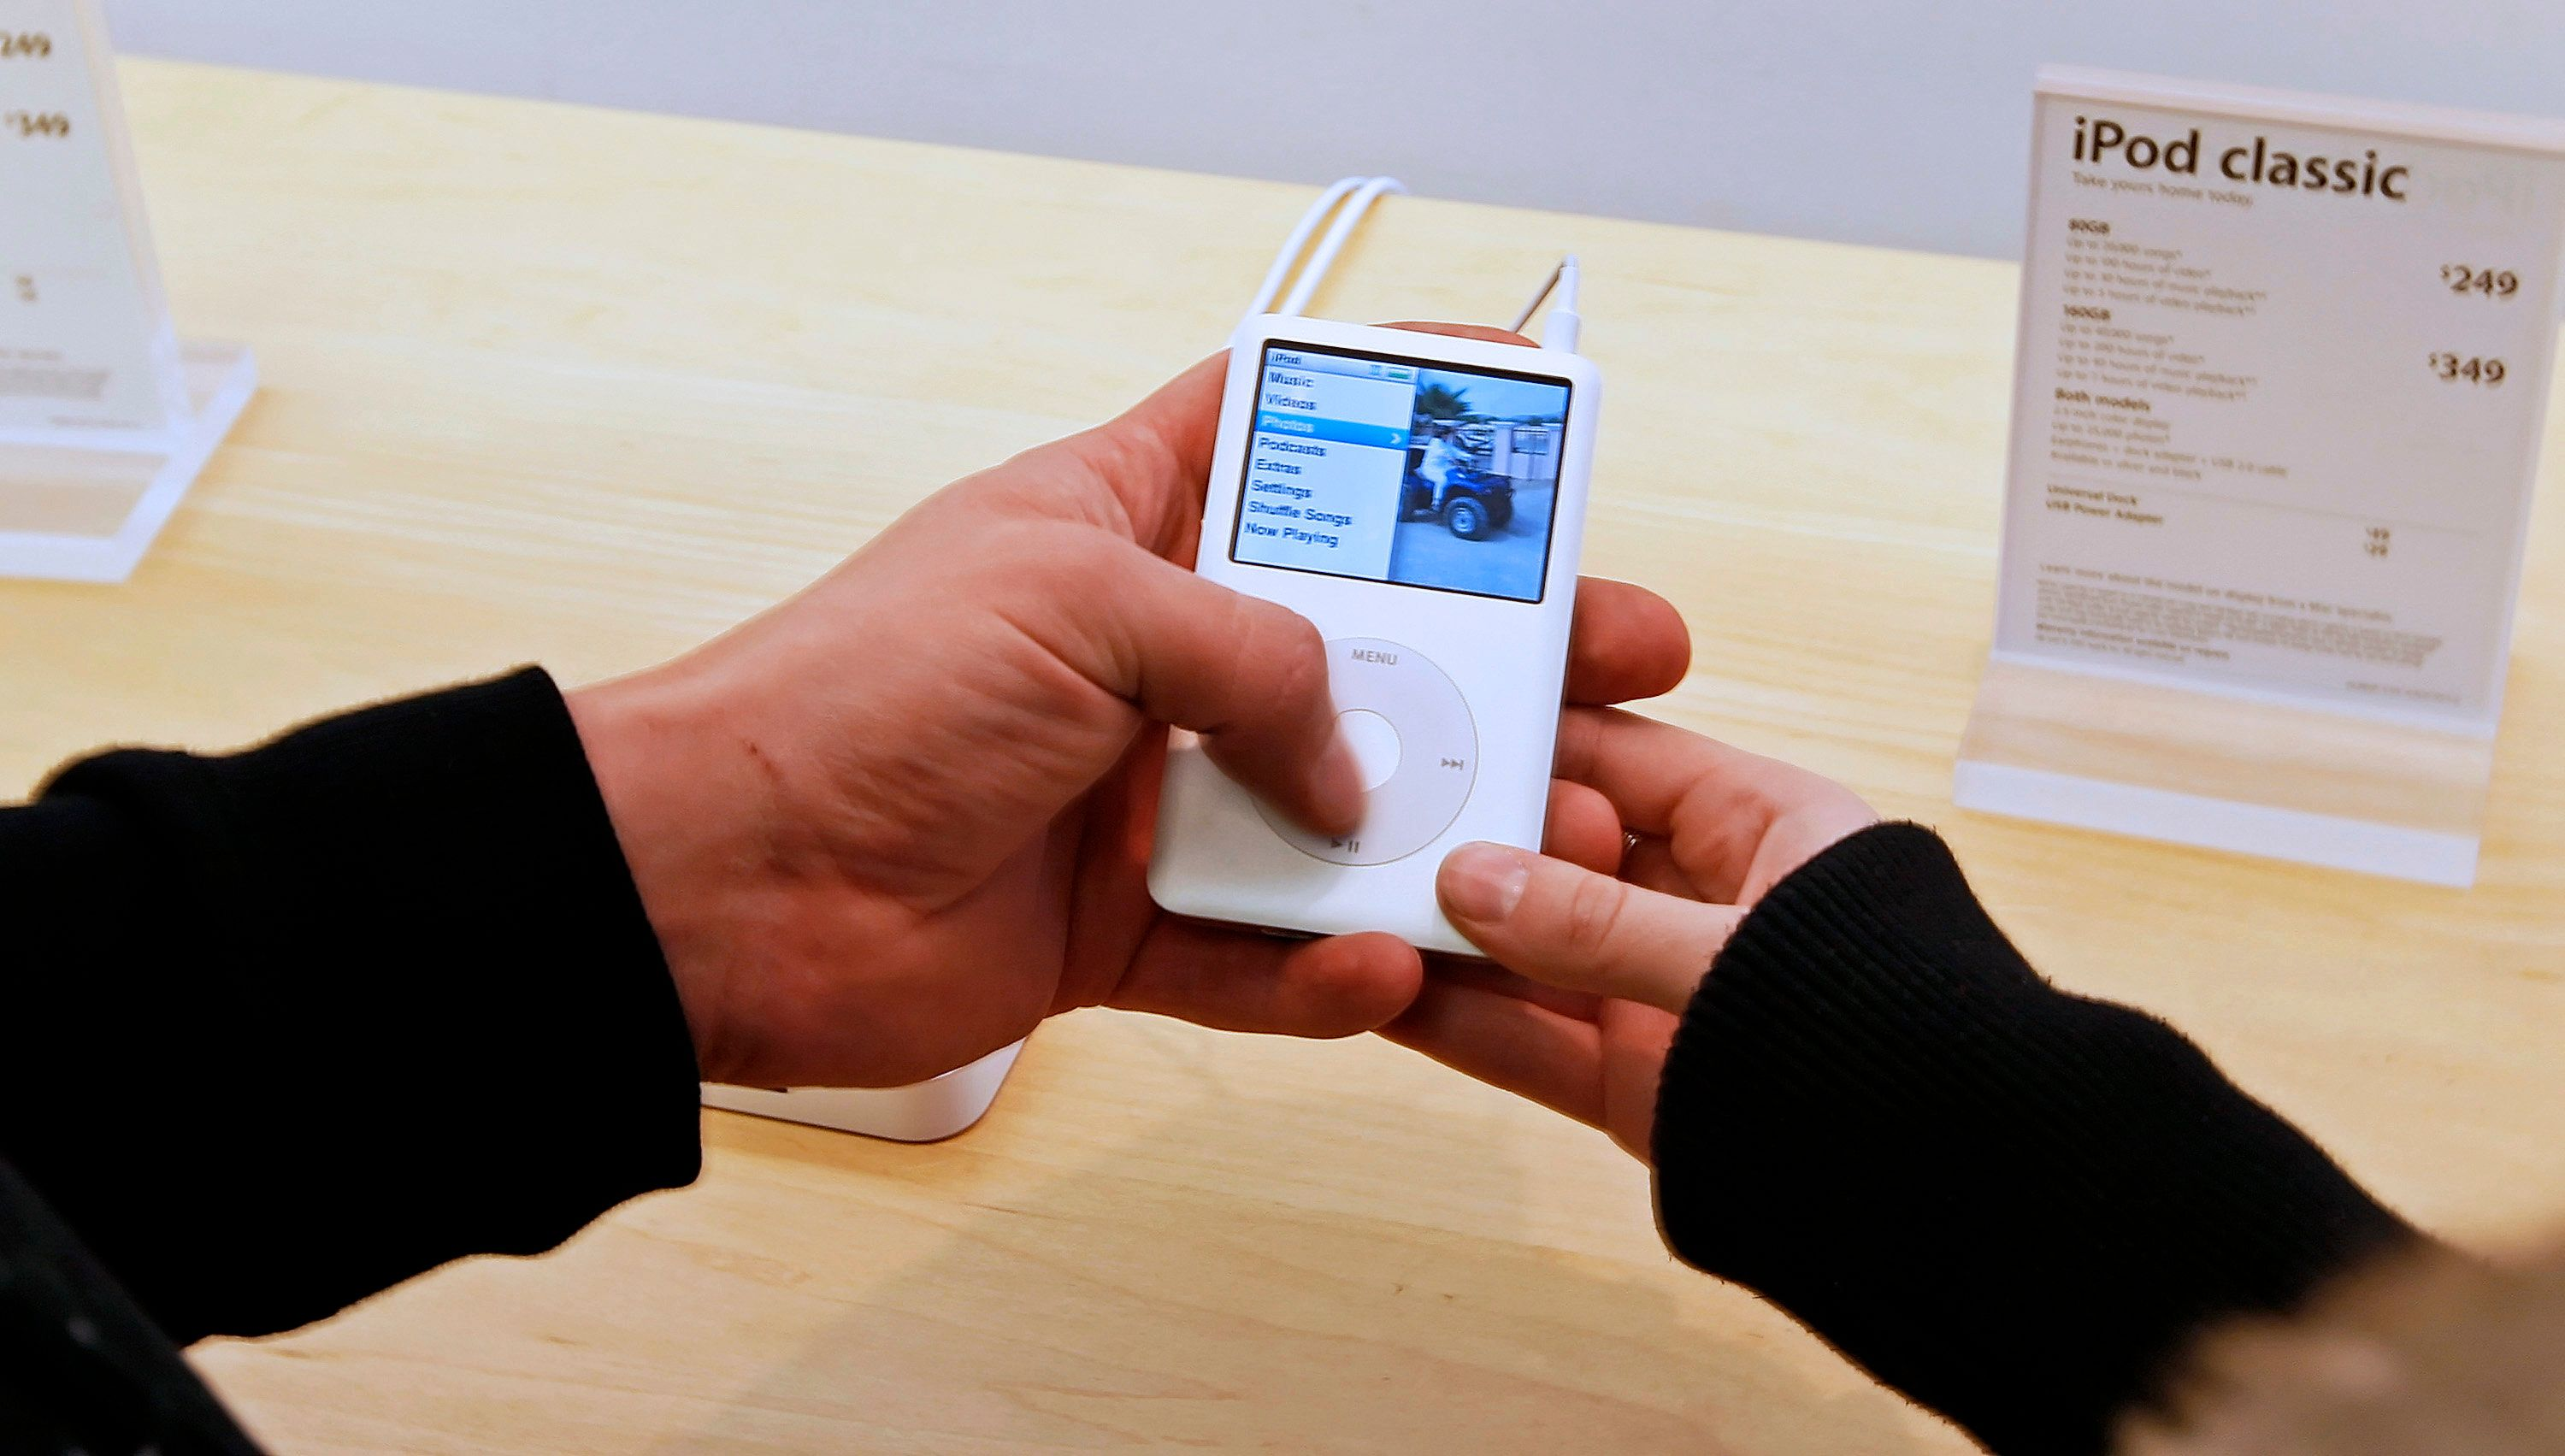 UNITED STATES - OCTOBER 20:  Customers Michael, left, and Teresa Hamilly display an Apple iPod Classic portable media device at an Apple Store in Salt Lake City, Utah, U.S., on Saturday, Oct. 20, 2007. Apple Inc. fourth-quarter profit jumped 67 percent, topping analysts' estimates, on soaring demand for the Macintosh computer, the iPhone handset and new iPods. The shares rose in extended trading.  (Photo by F/Bloomberg via Getty Images)